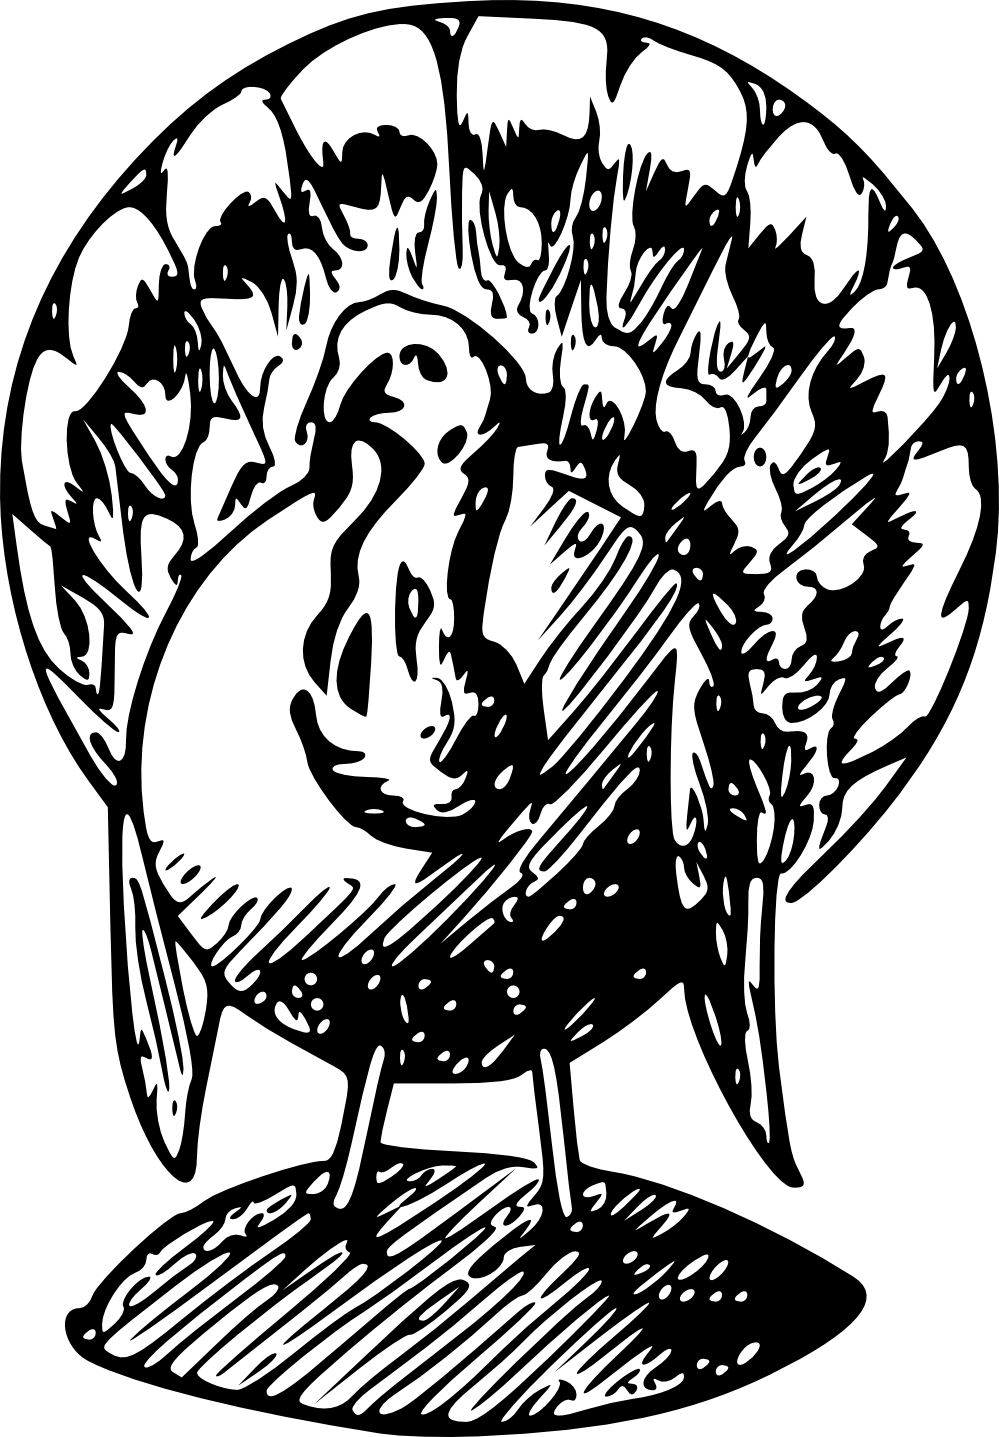 Turkey clipart black and white. Free download clip art